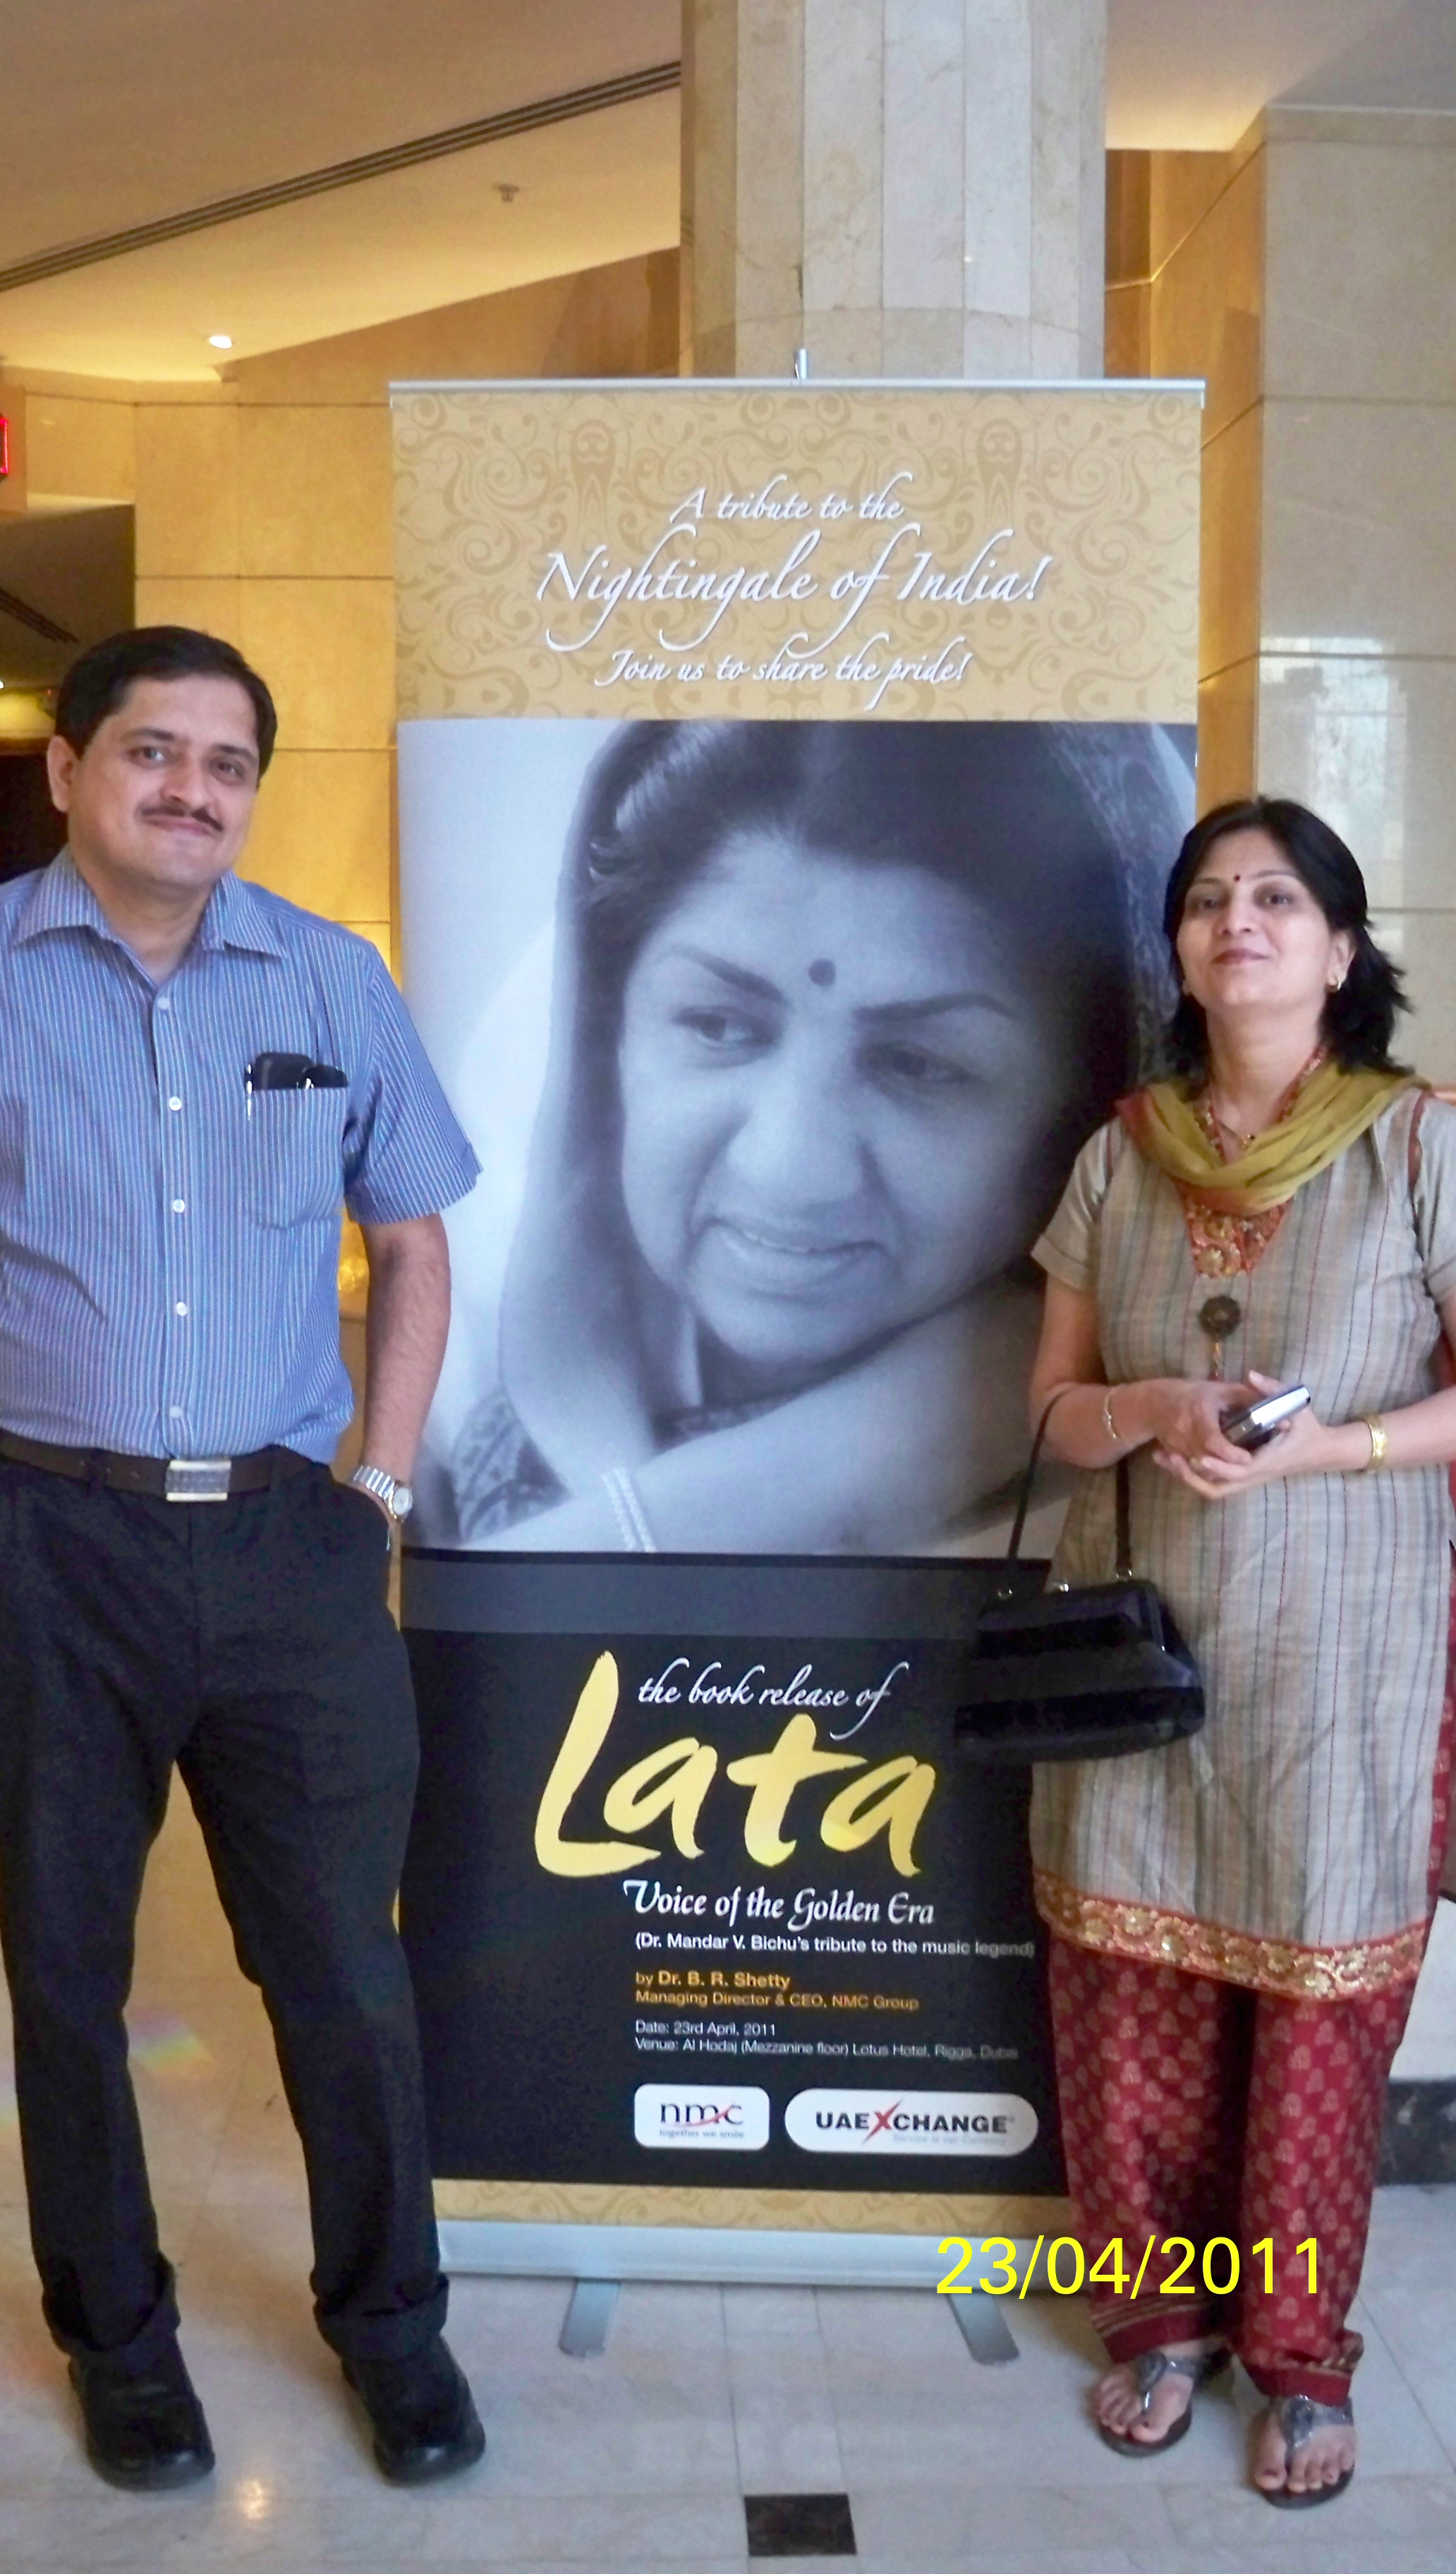 Author with his wife Dr. Shubhada